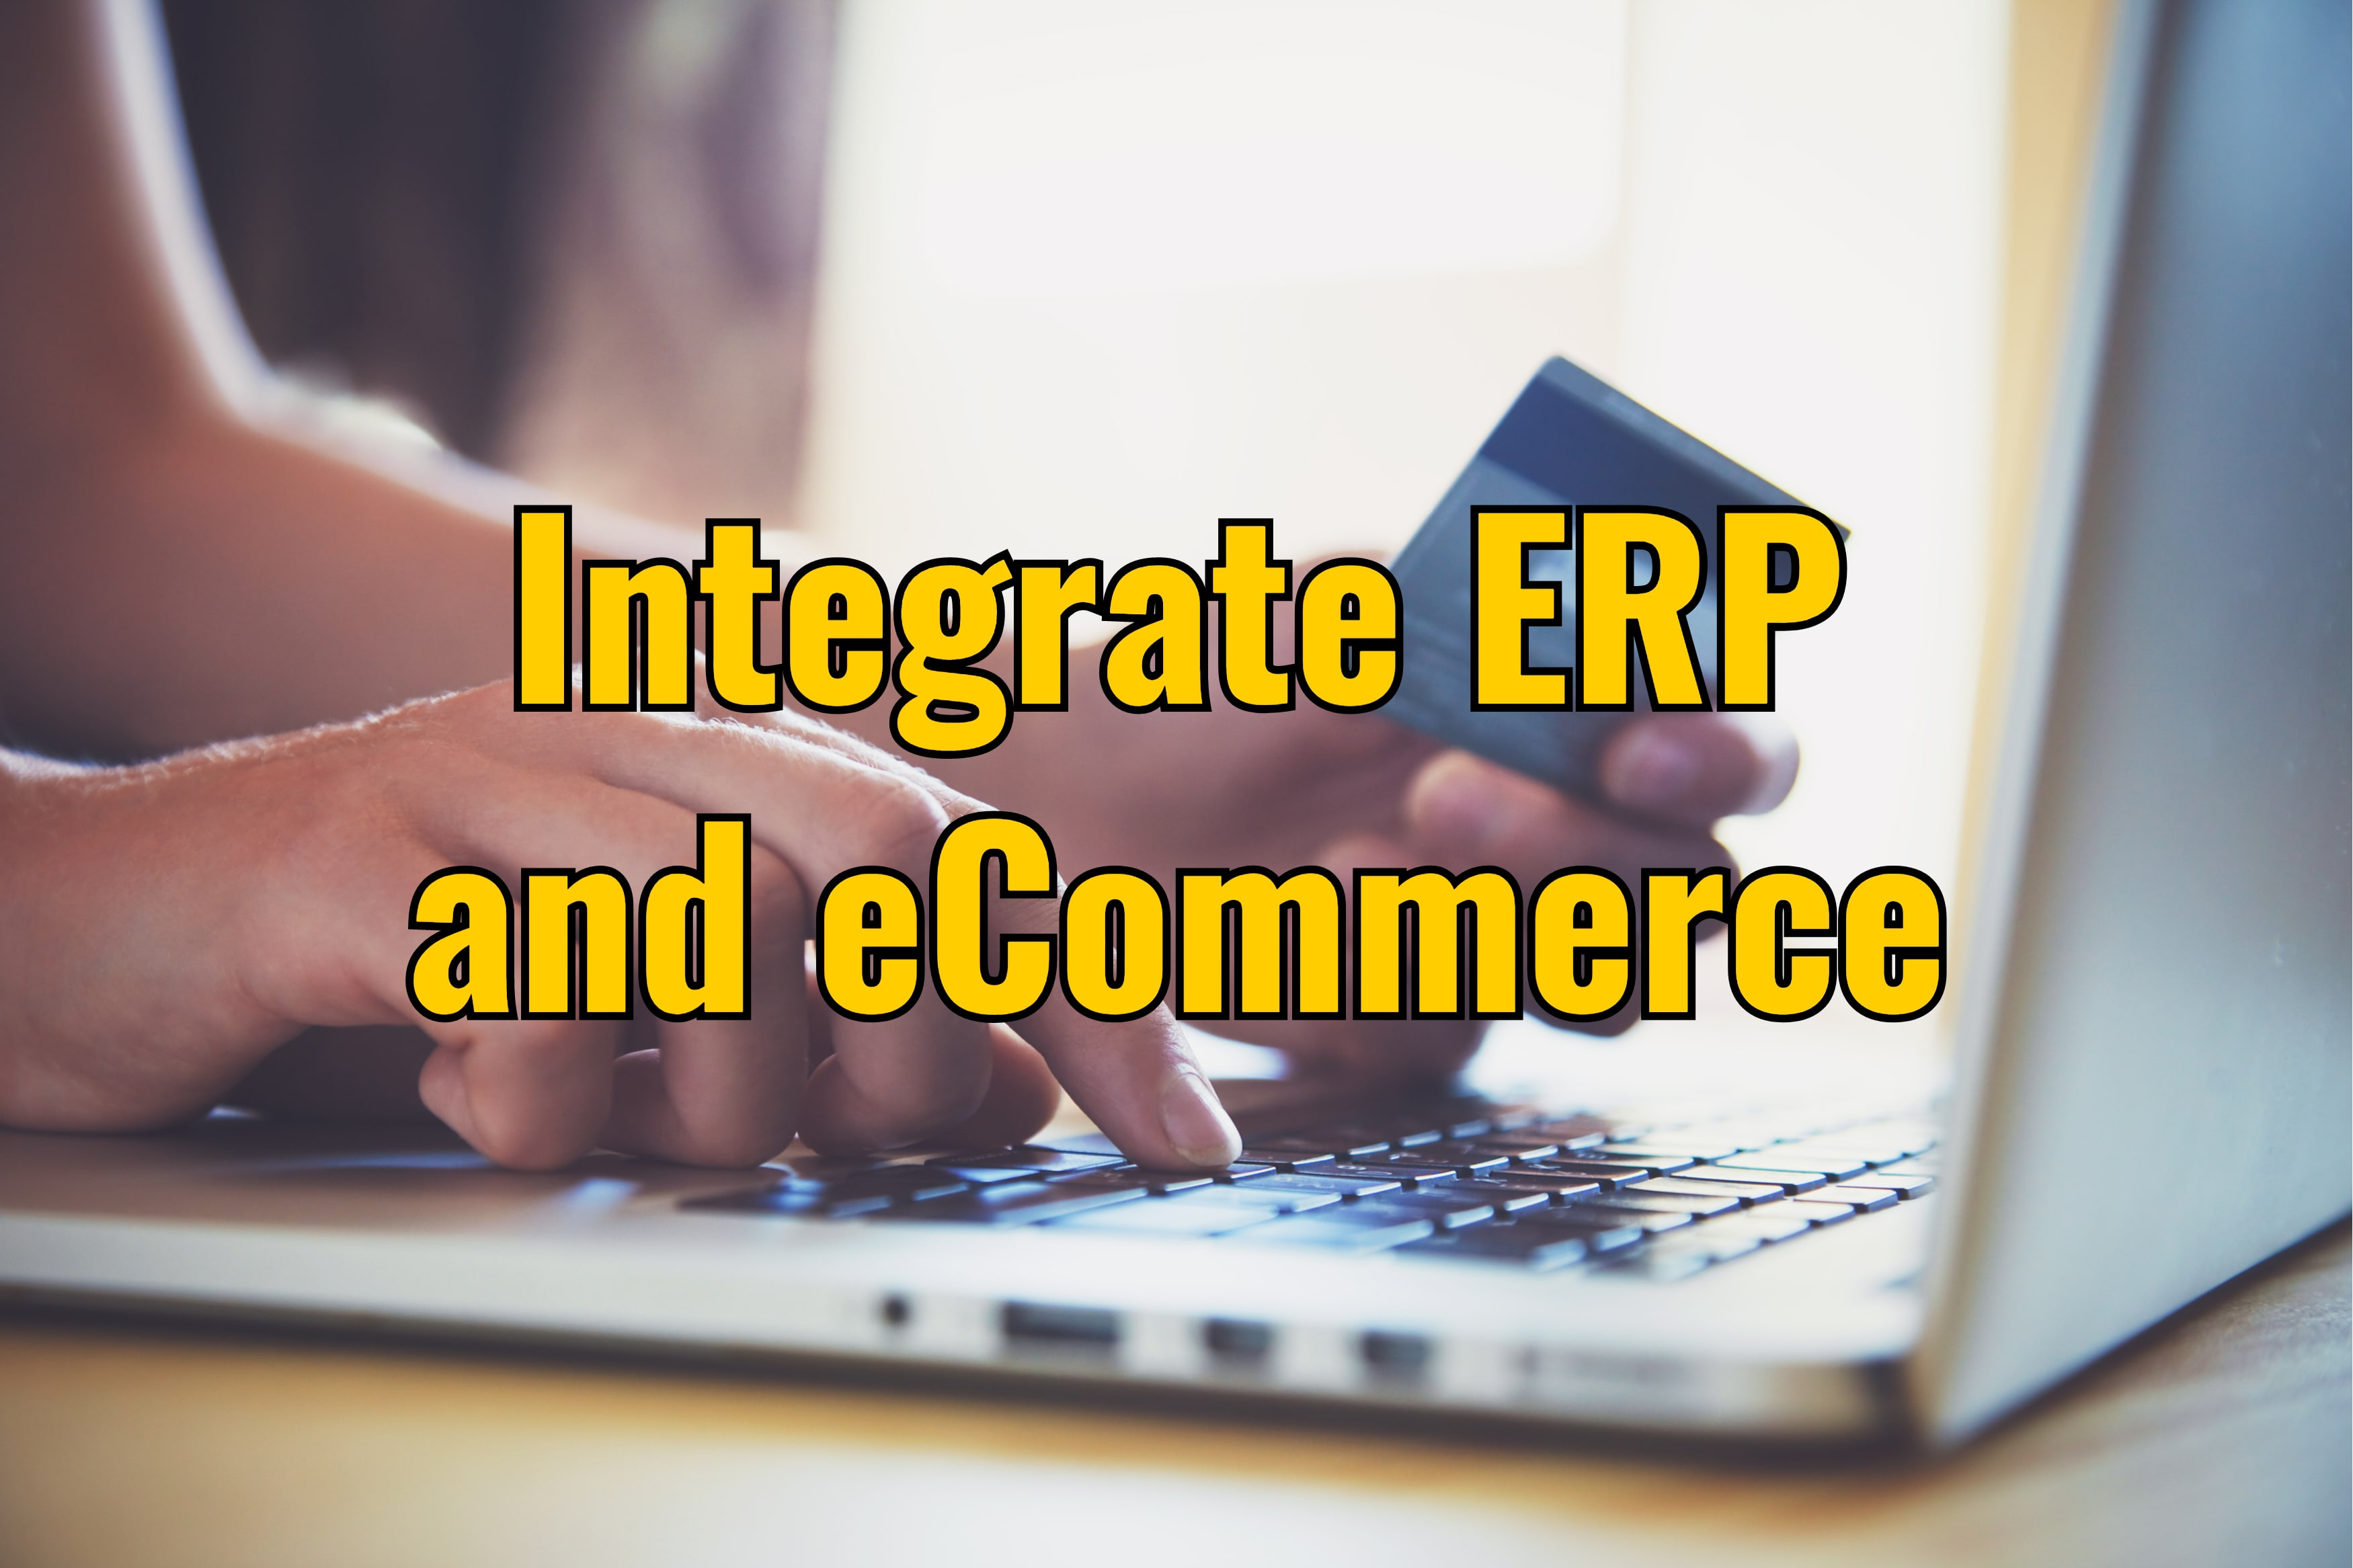 3 Reasons to Integrate ERP and eCommerce